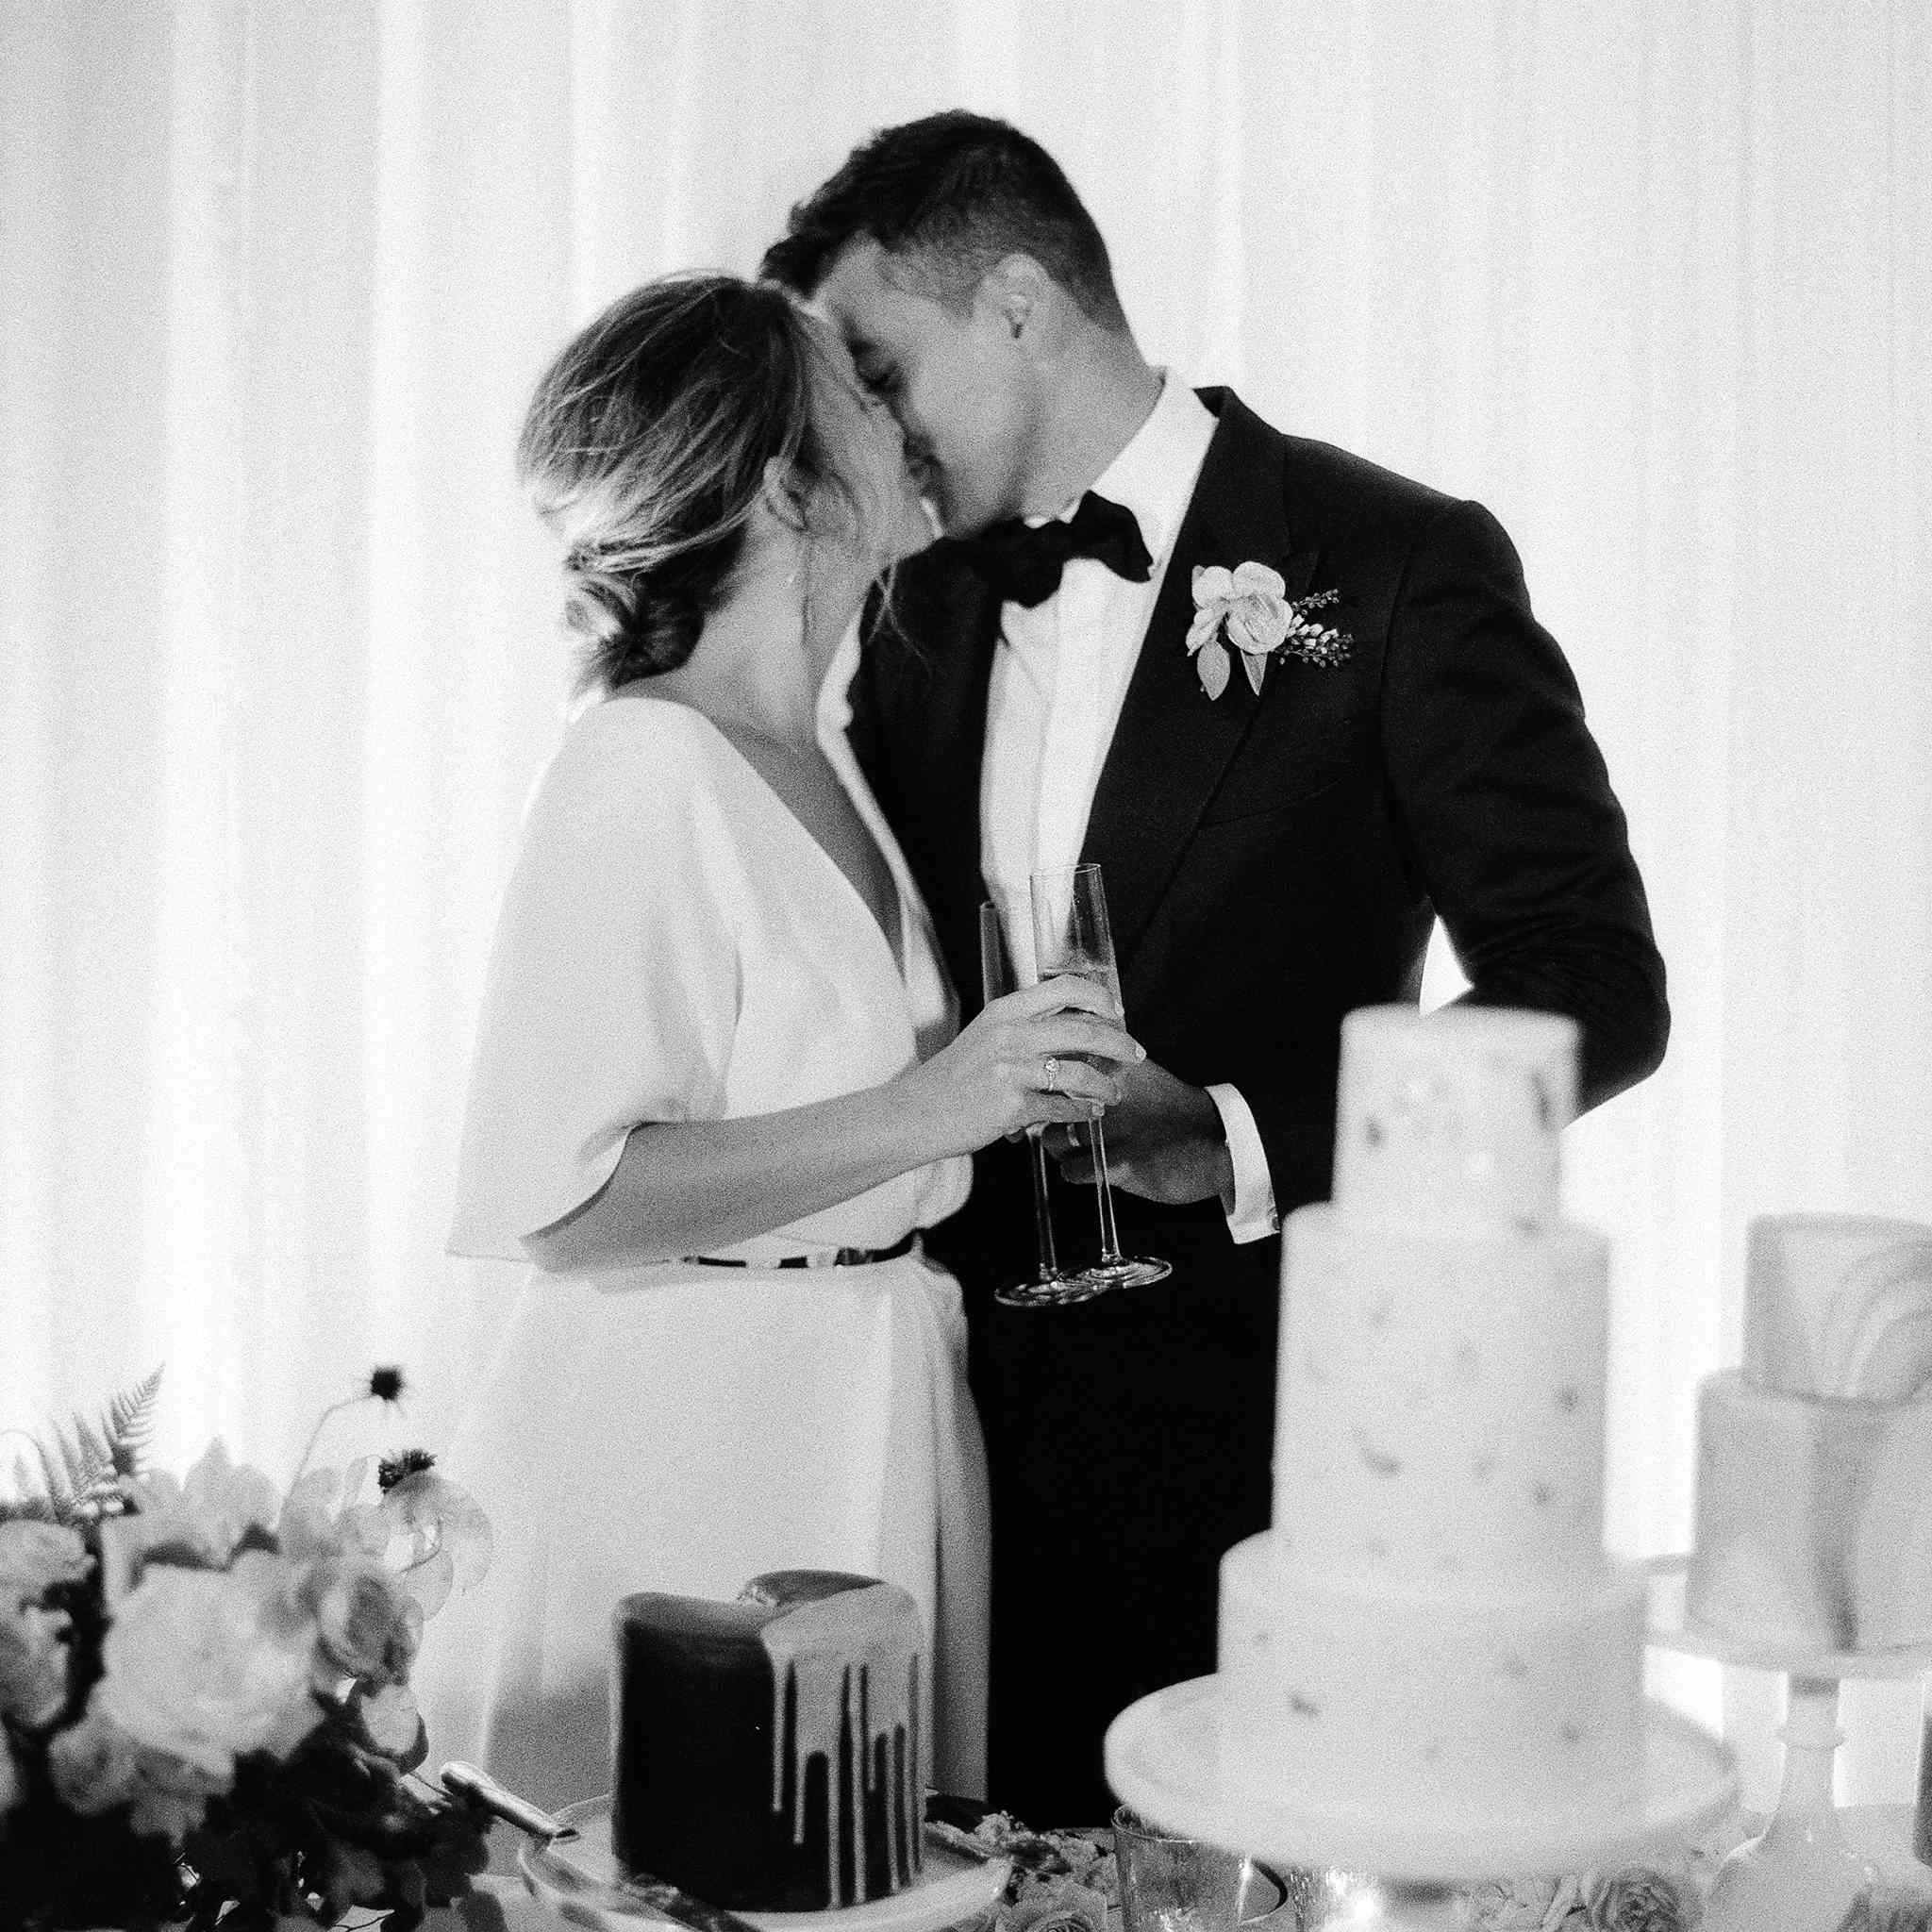 Bride and groom with cakes